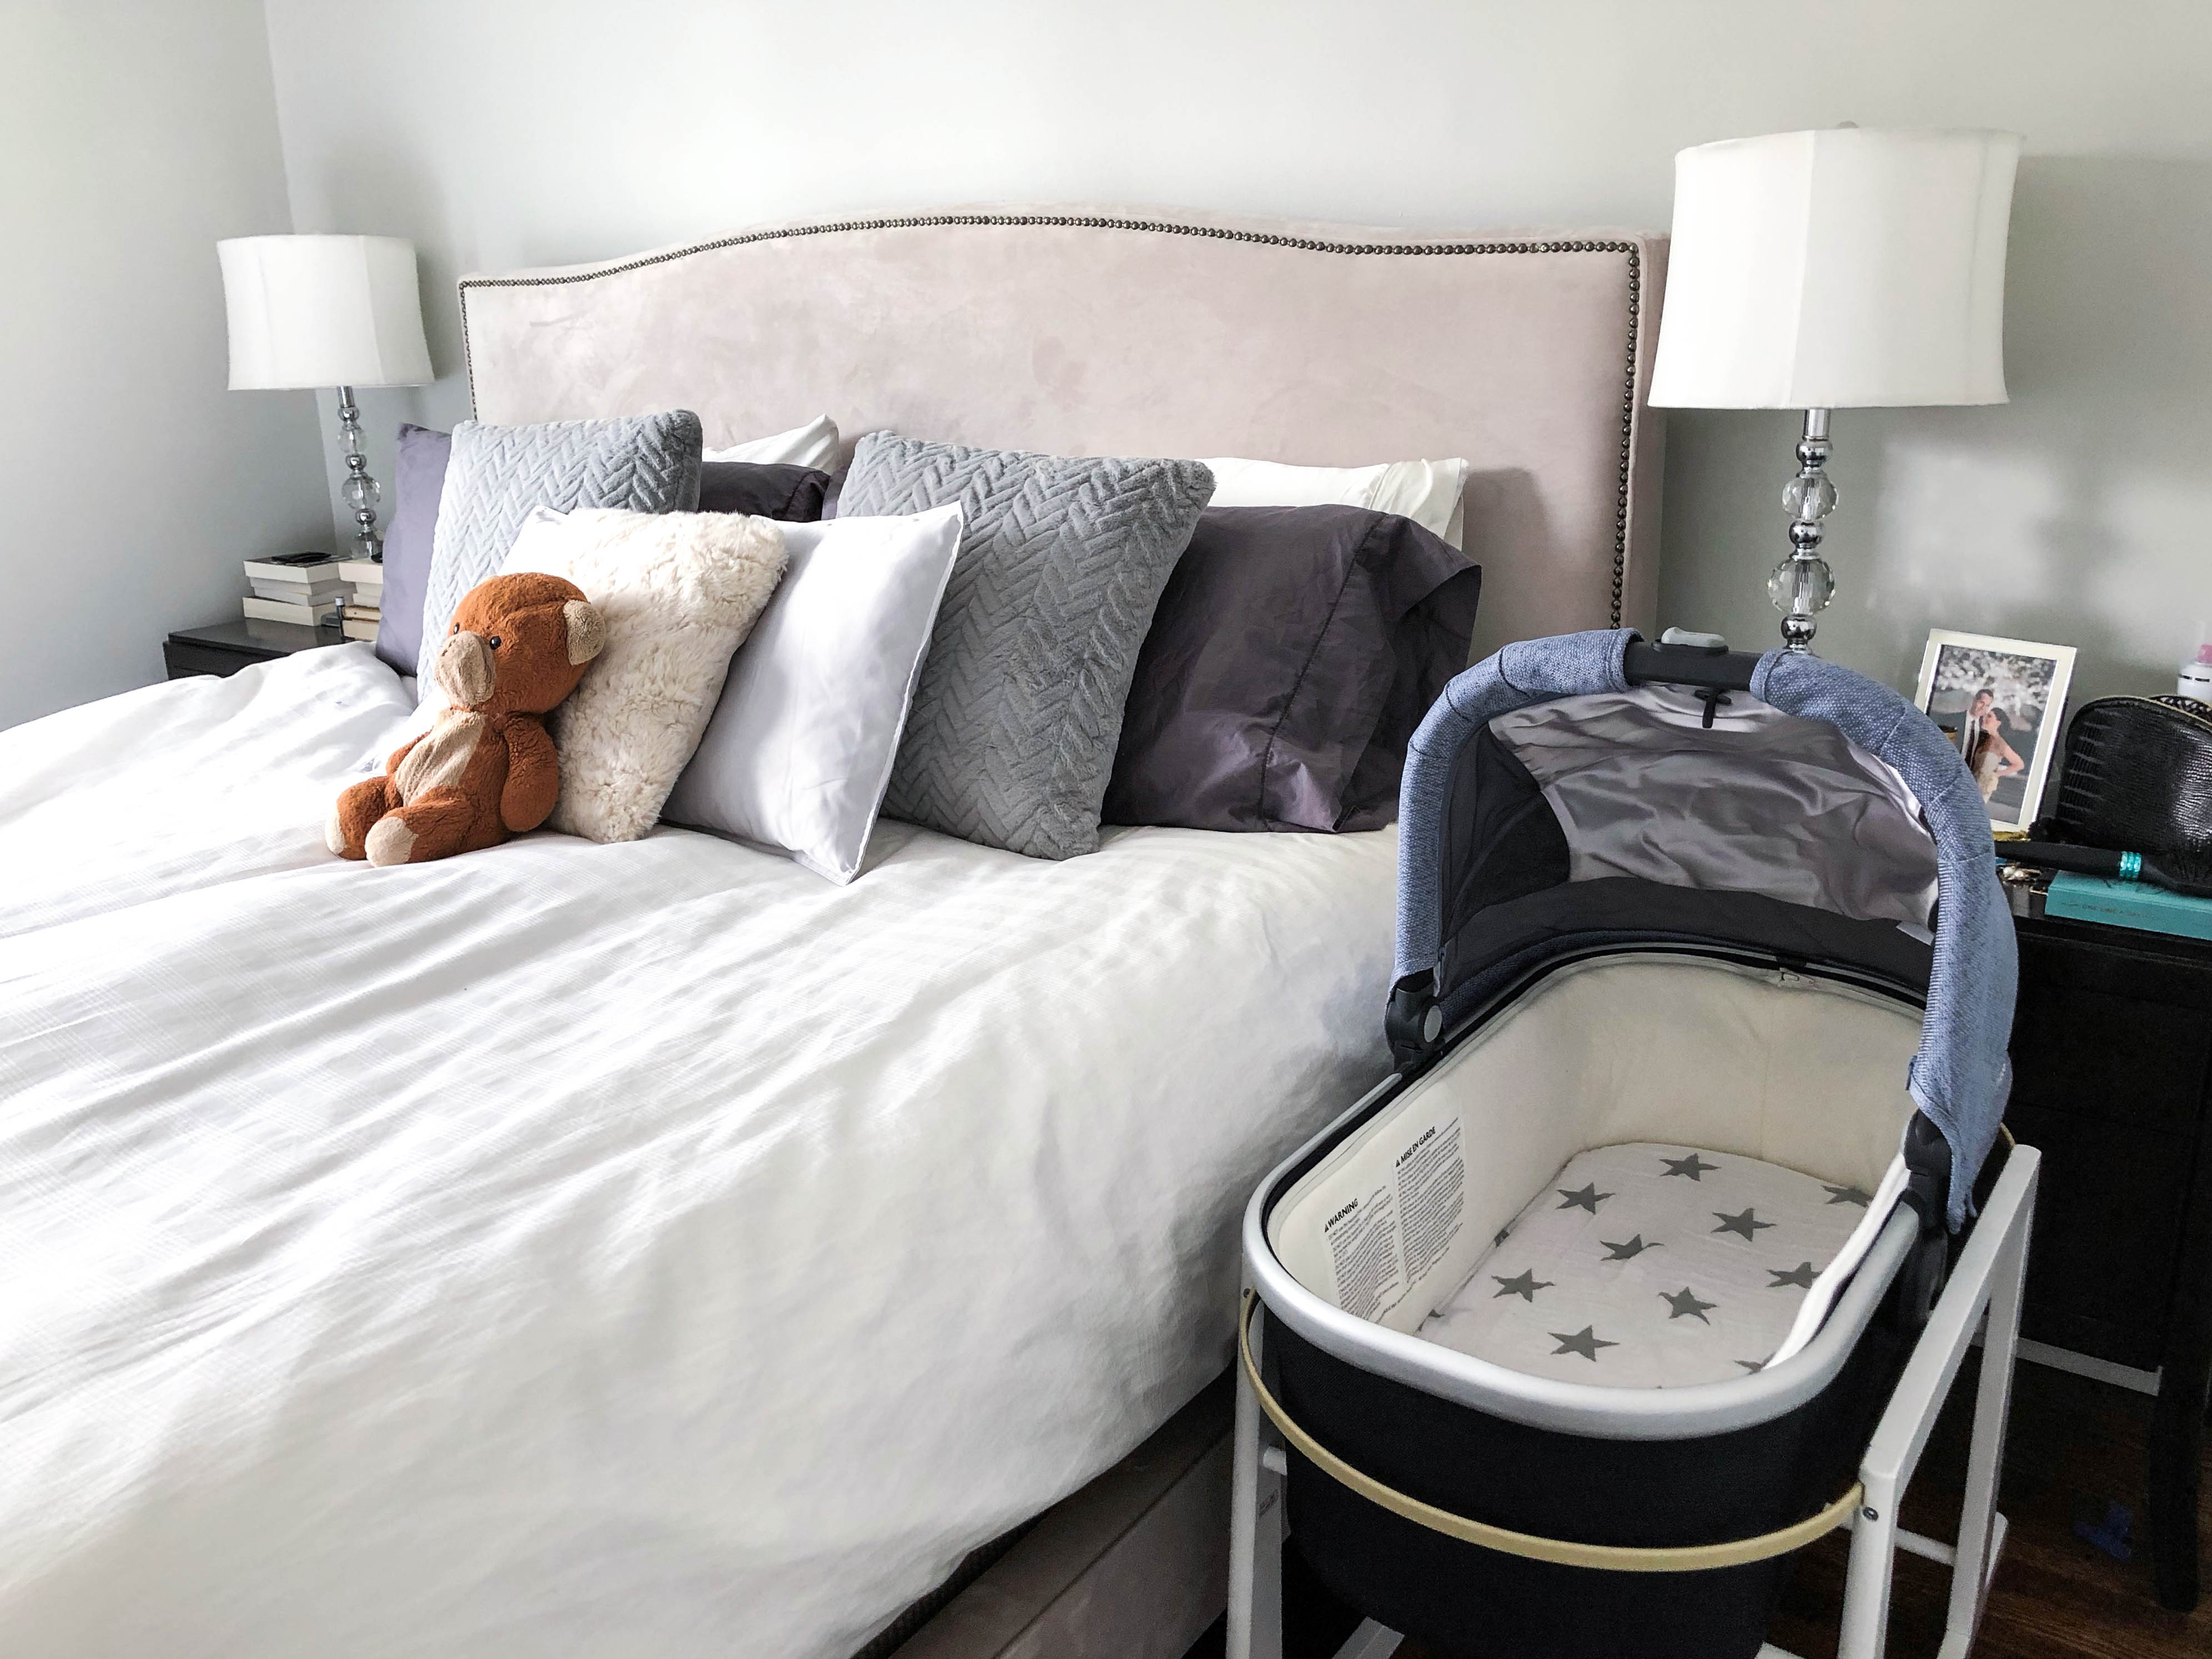 Bedroom with UPPAbaby bassinet